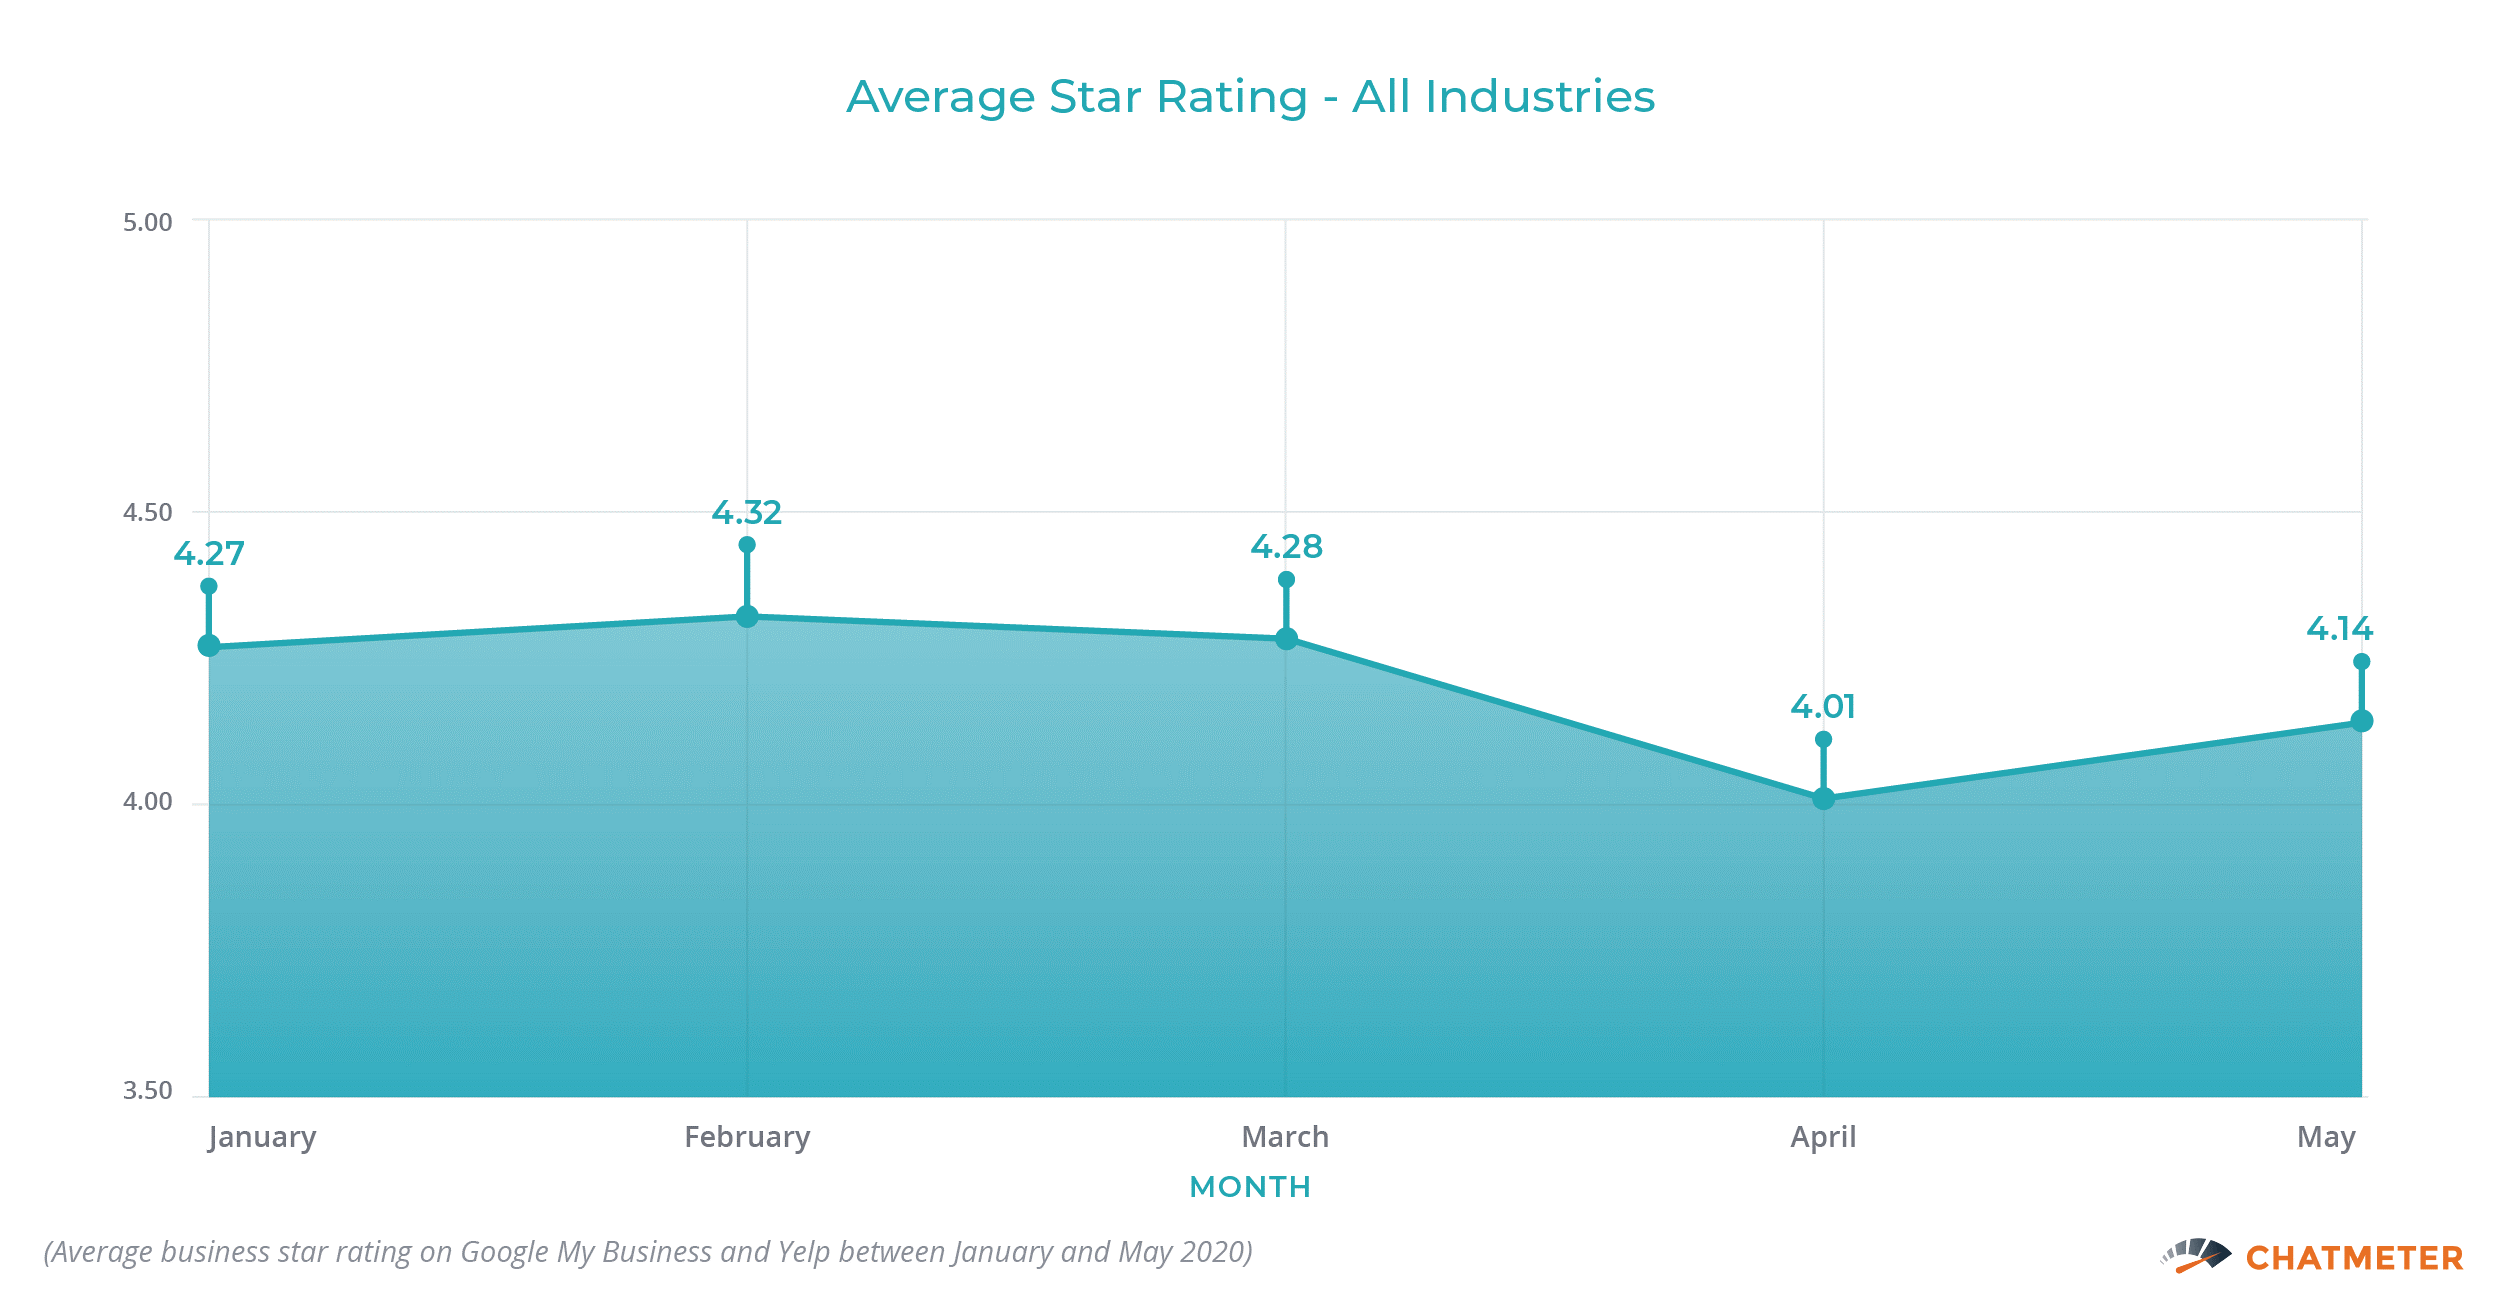 Average Star Rating All Industries